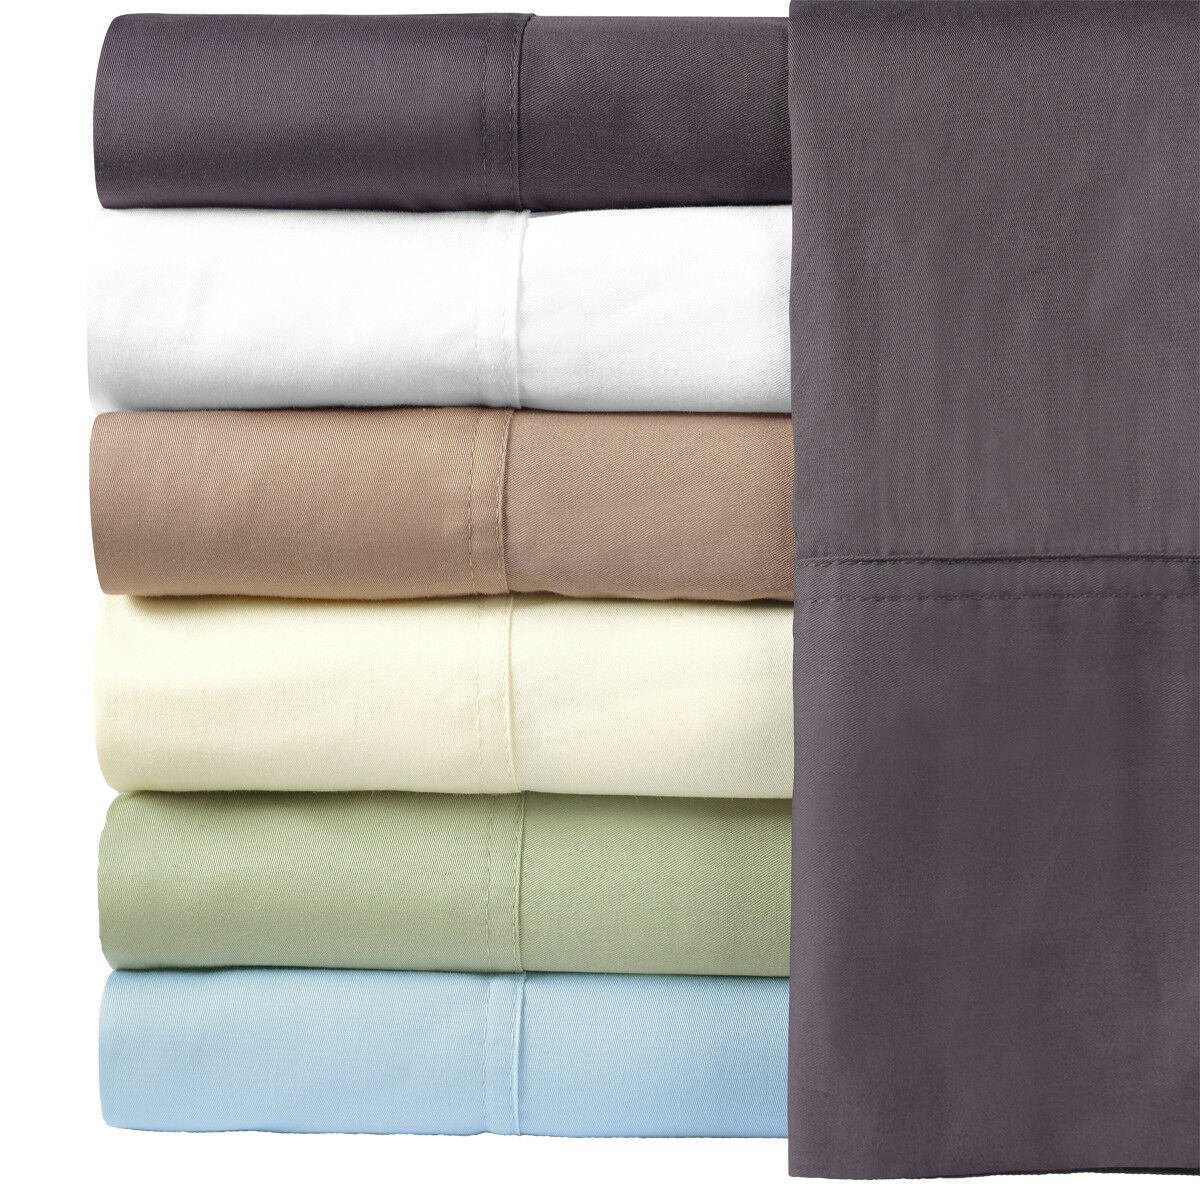 Top Split King Sheet Set Bamboo Cotton Blend Flex Head Cool Bed Sheets